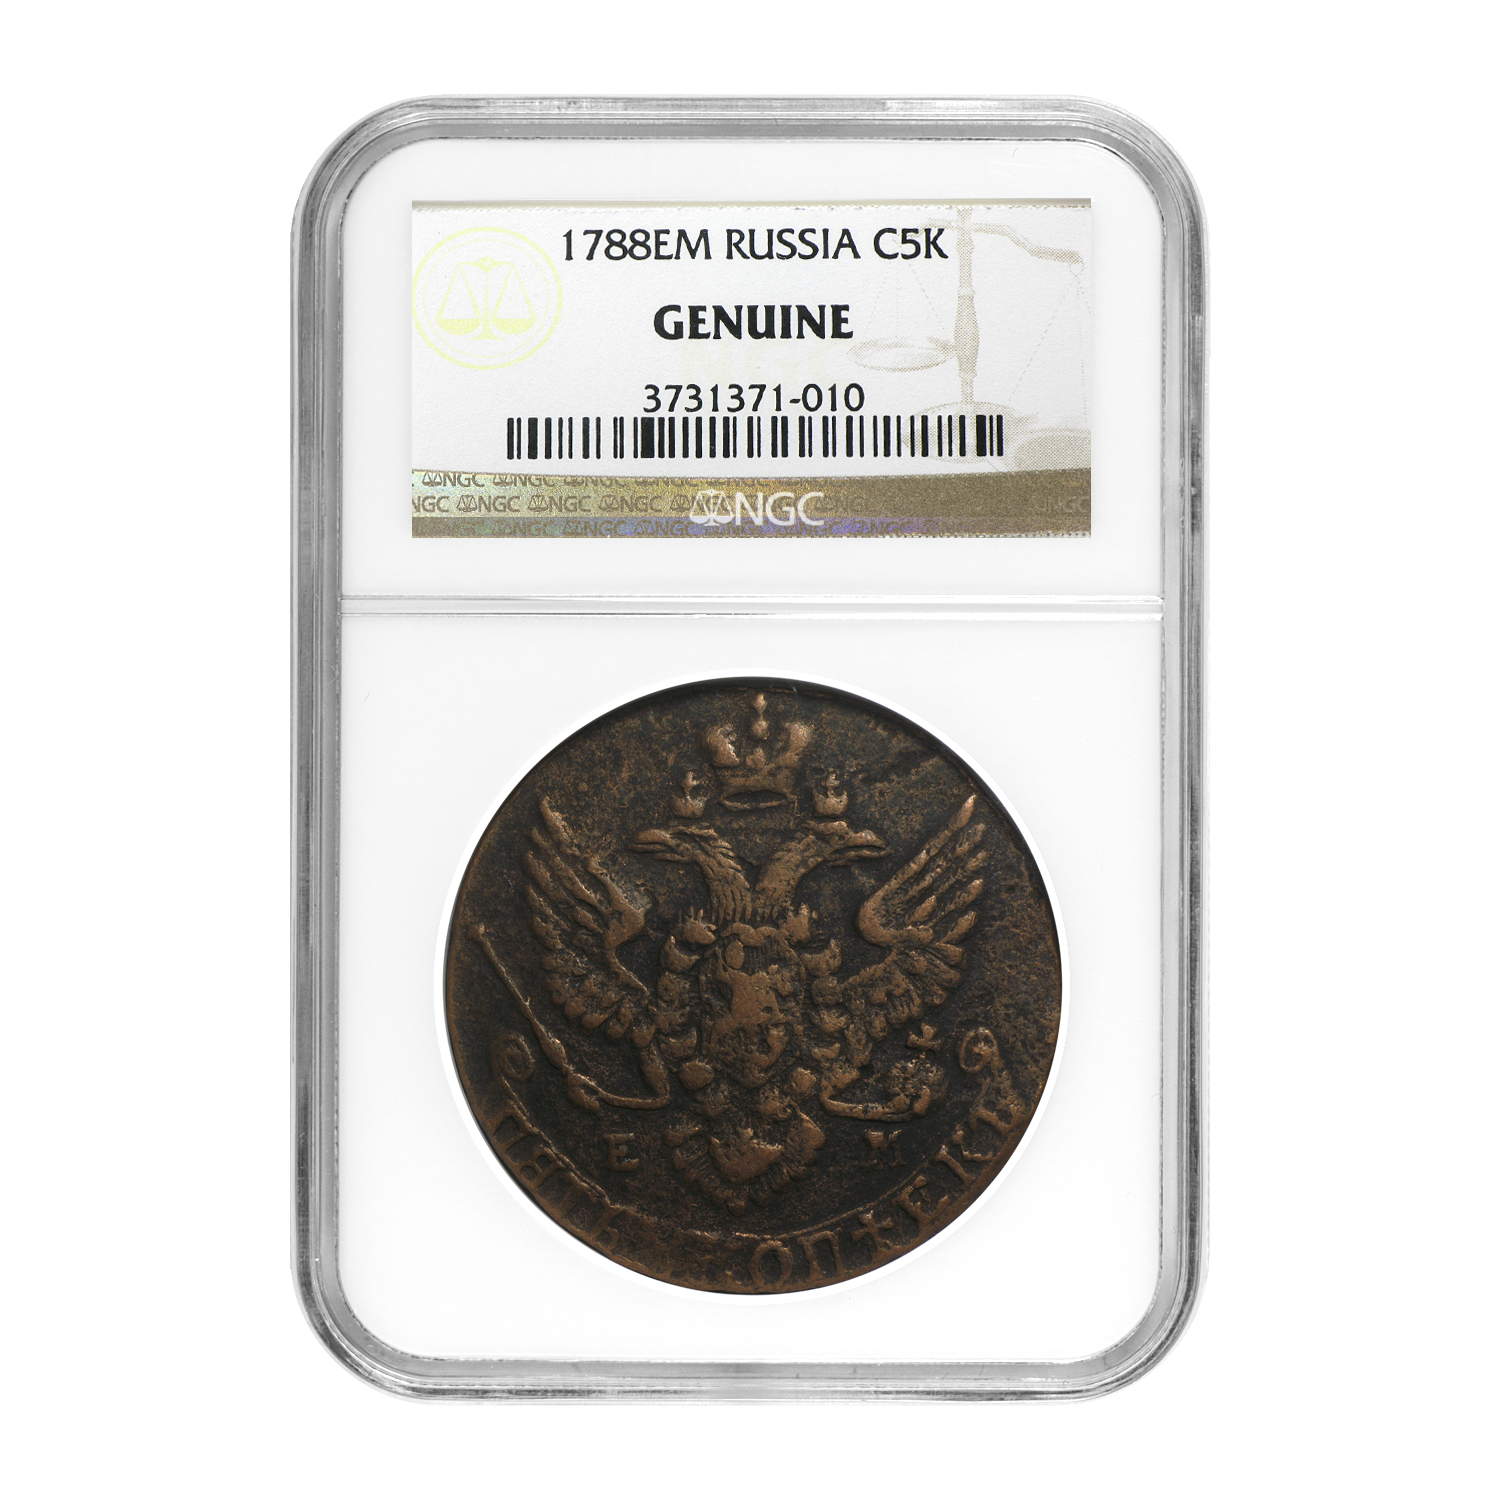 Russia 5 Kopeks Catherine the Great Genuine NGC